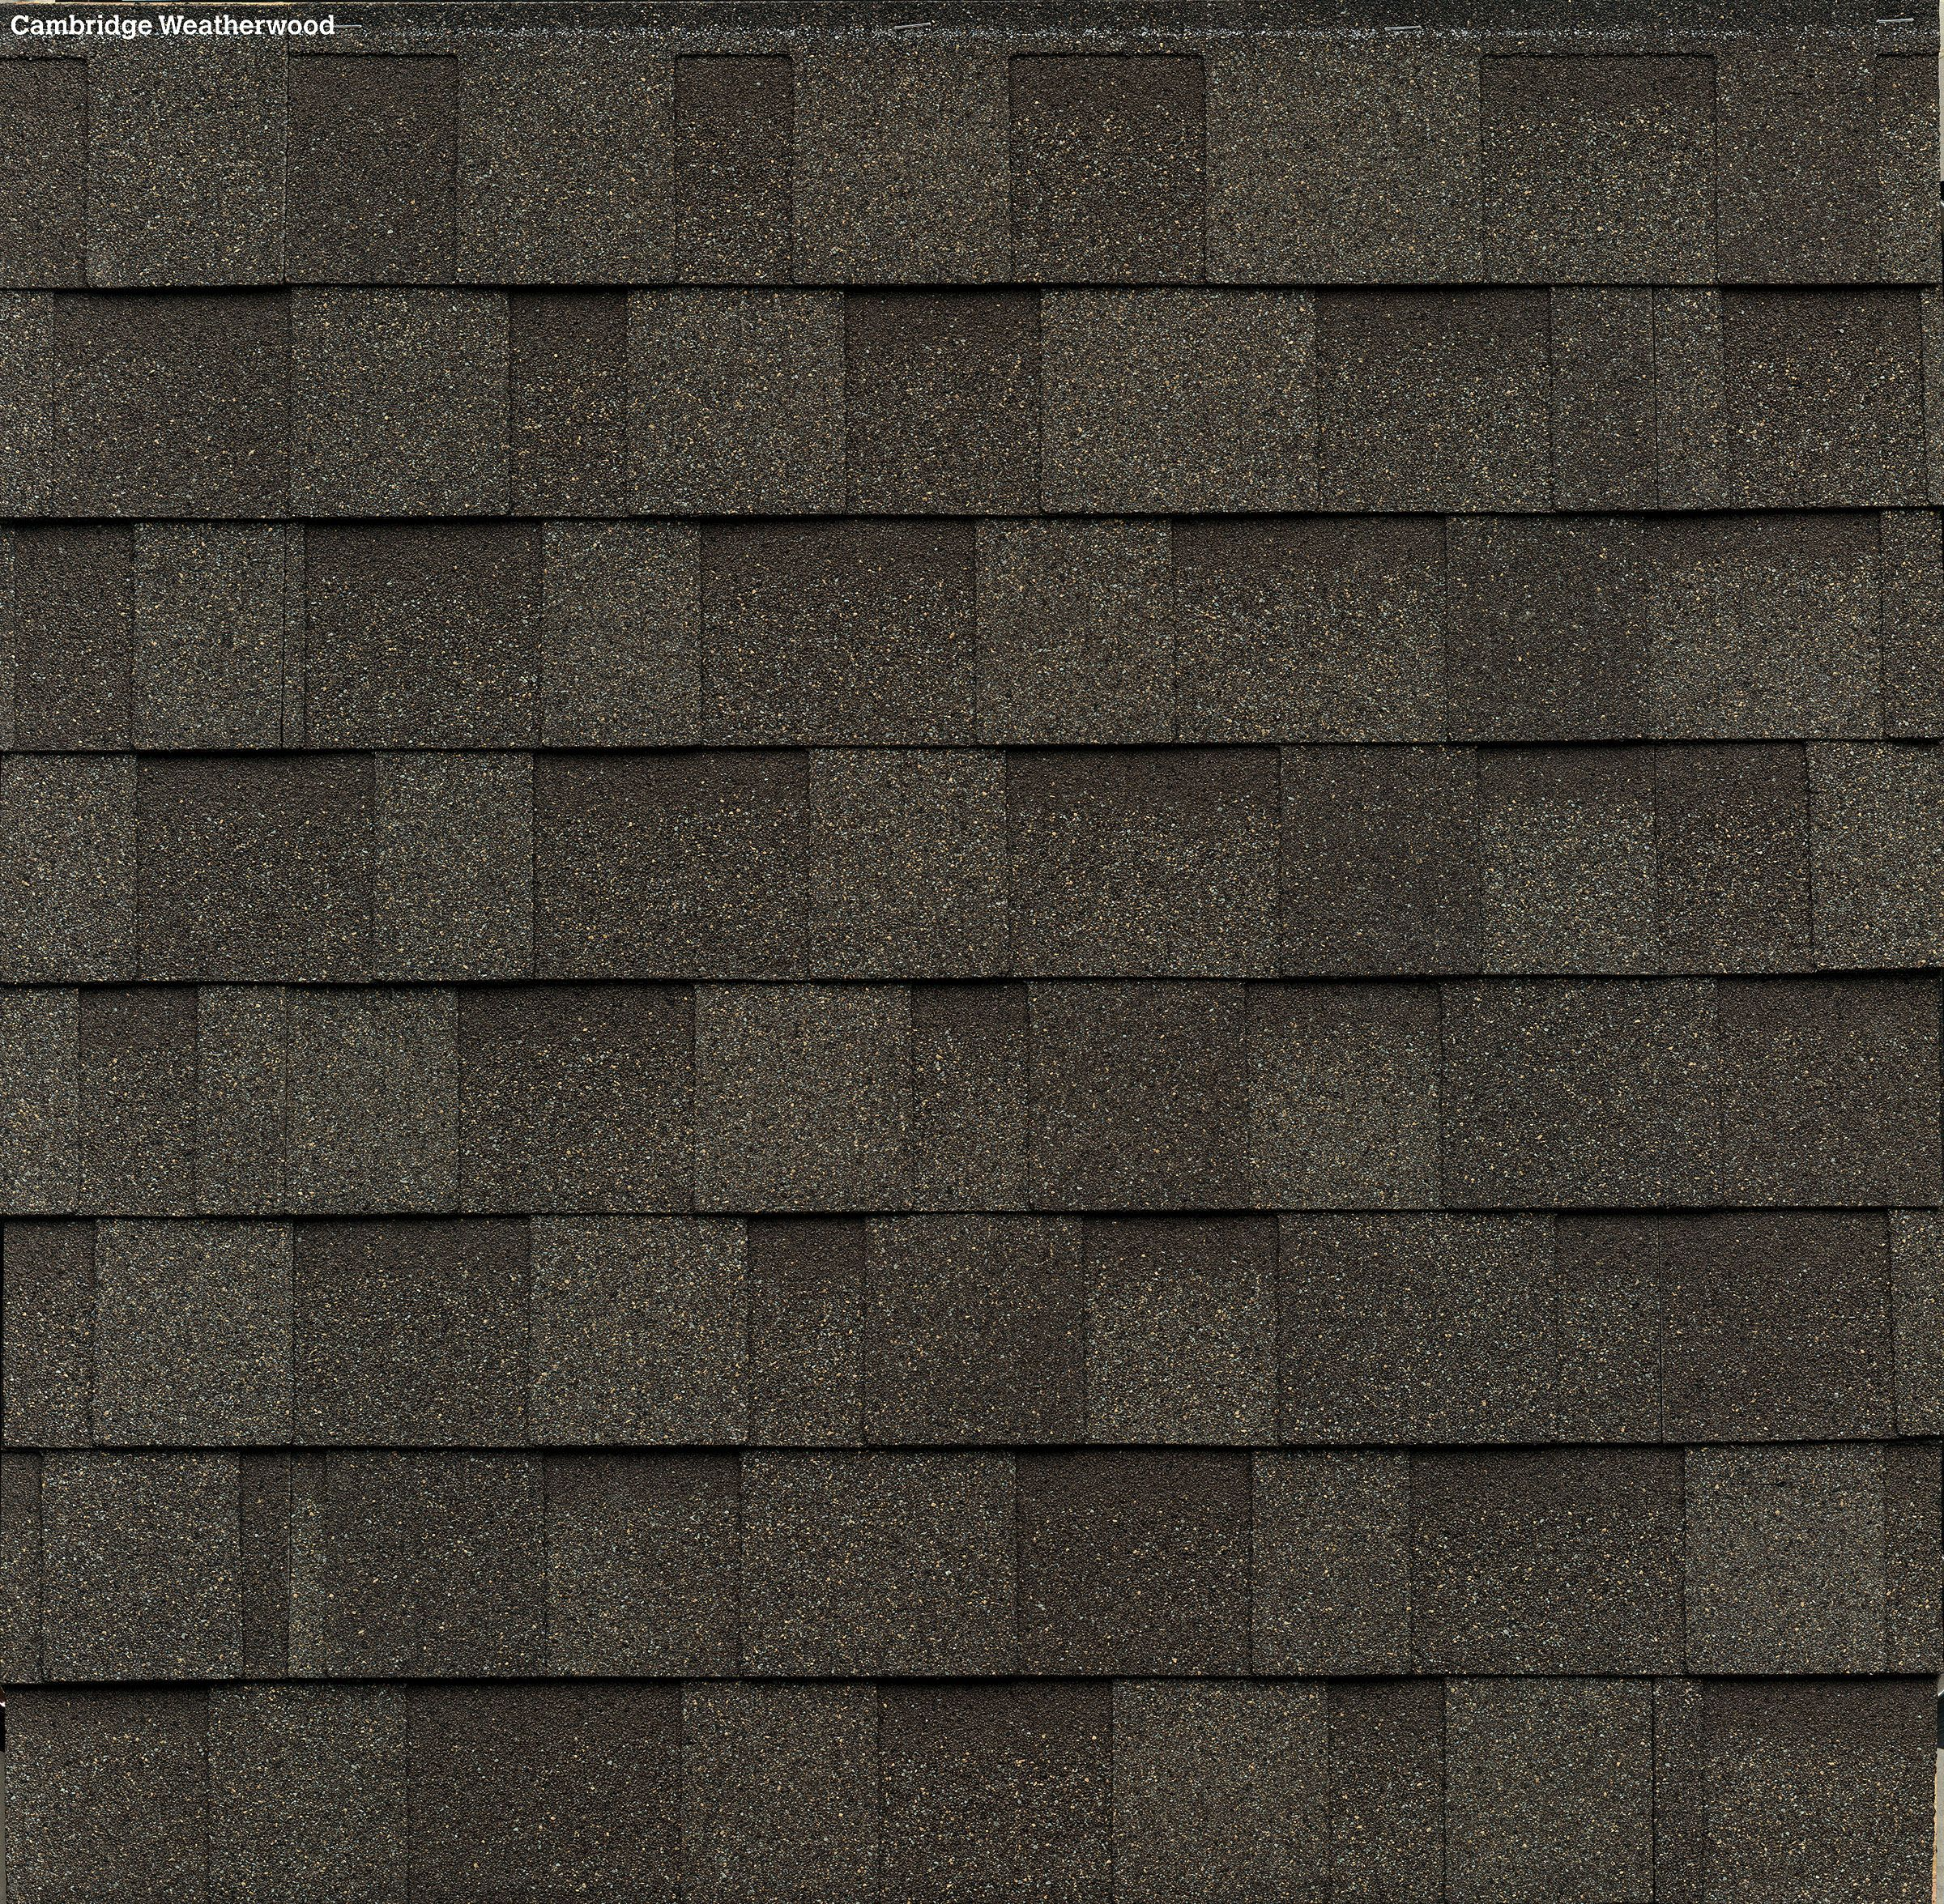 Best Cambridge Architectural Roofing Shingles Laminated Roof Shingles Iko In 2020 Residential 400 x 300